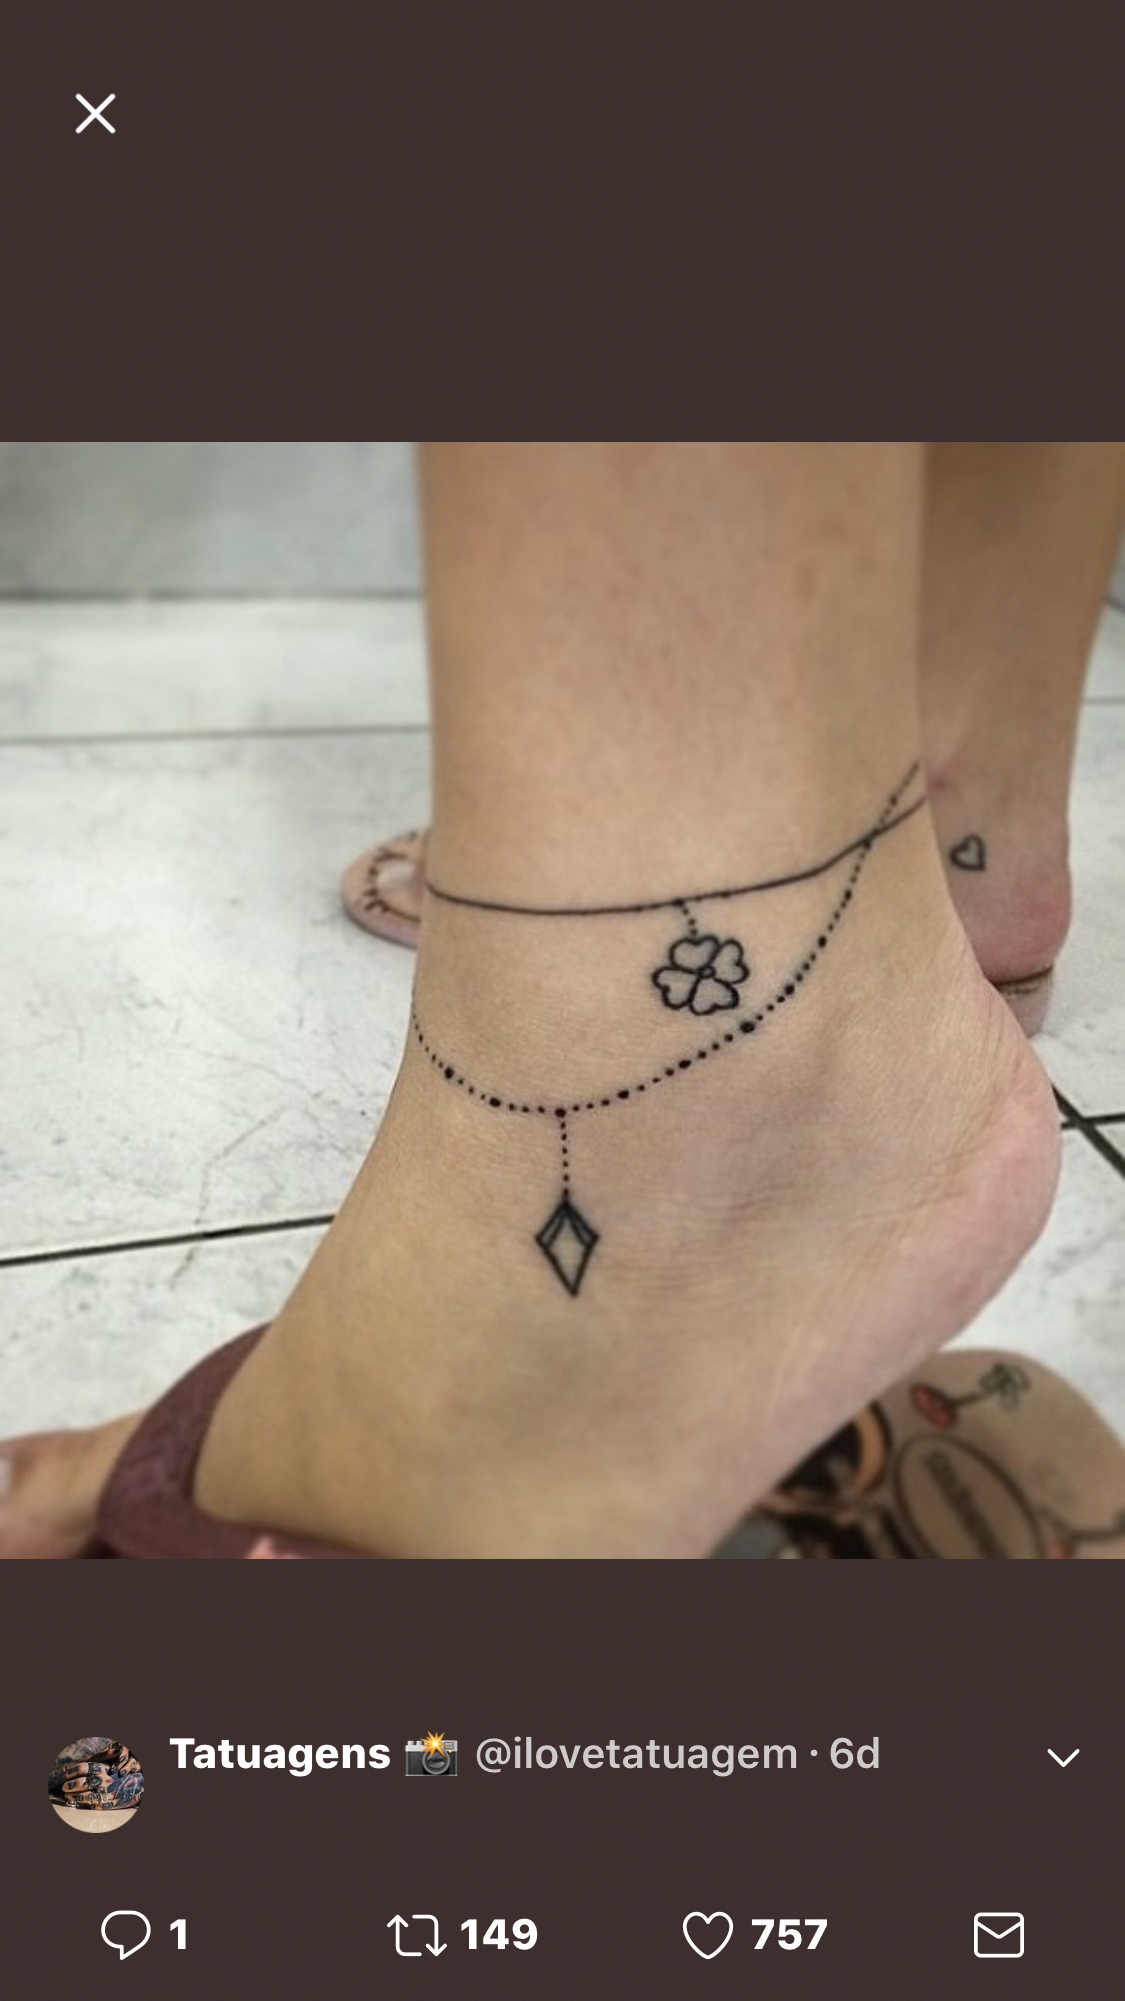 Cute Ankle Tattoo Anklet Tattoos Ankle Tattoo Designs Ankle Bracelet Tattoo